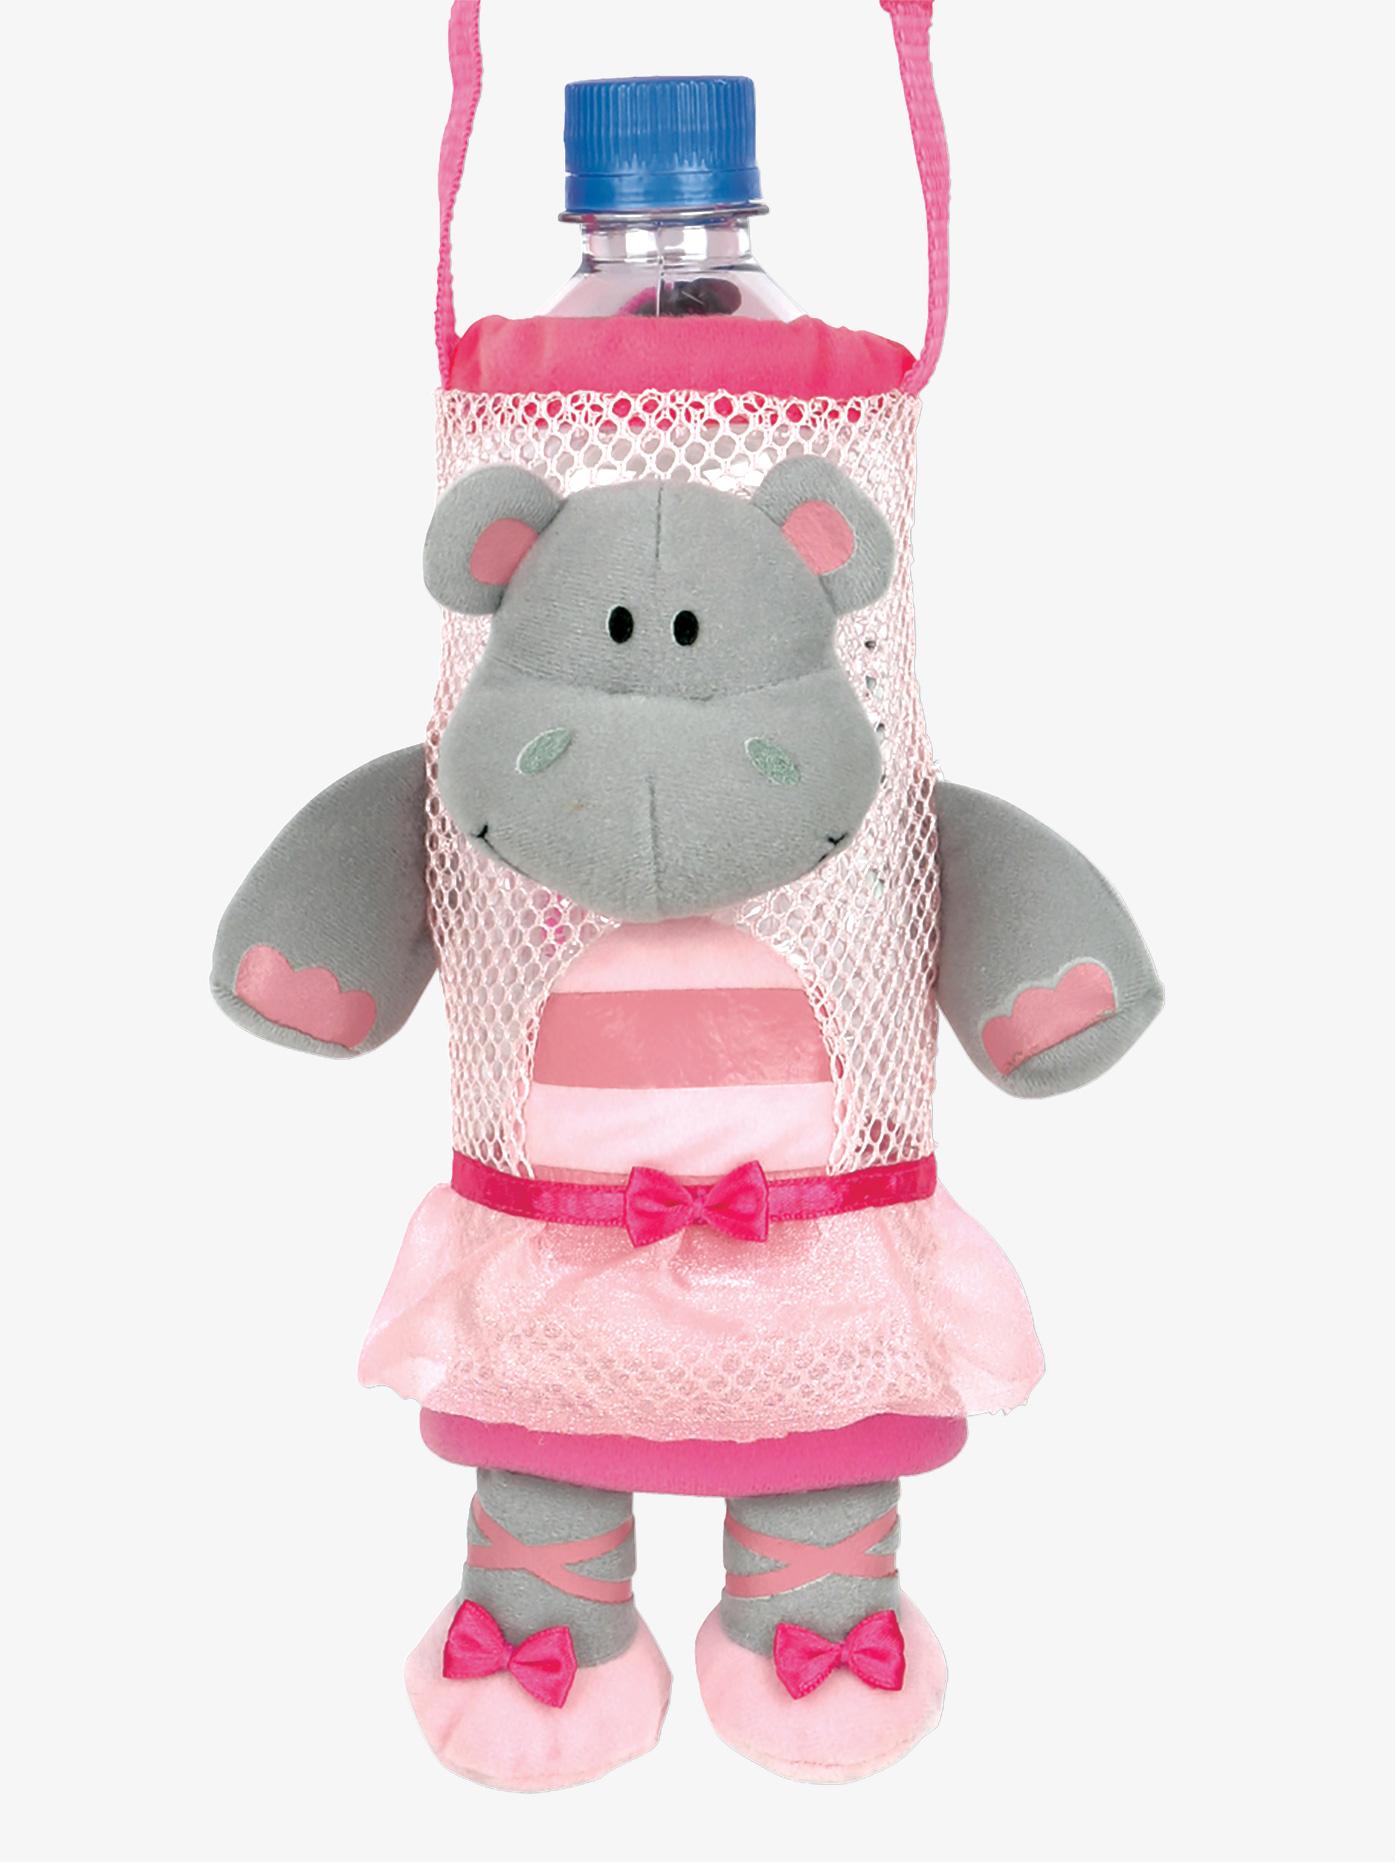 Water bottle holder with strap features an adorable plush hippo ballerina! Coordinates with matching Hippo Ballerina Back Pack available separately.